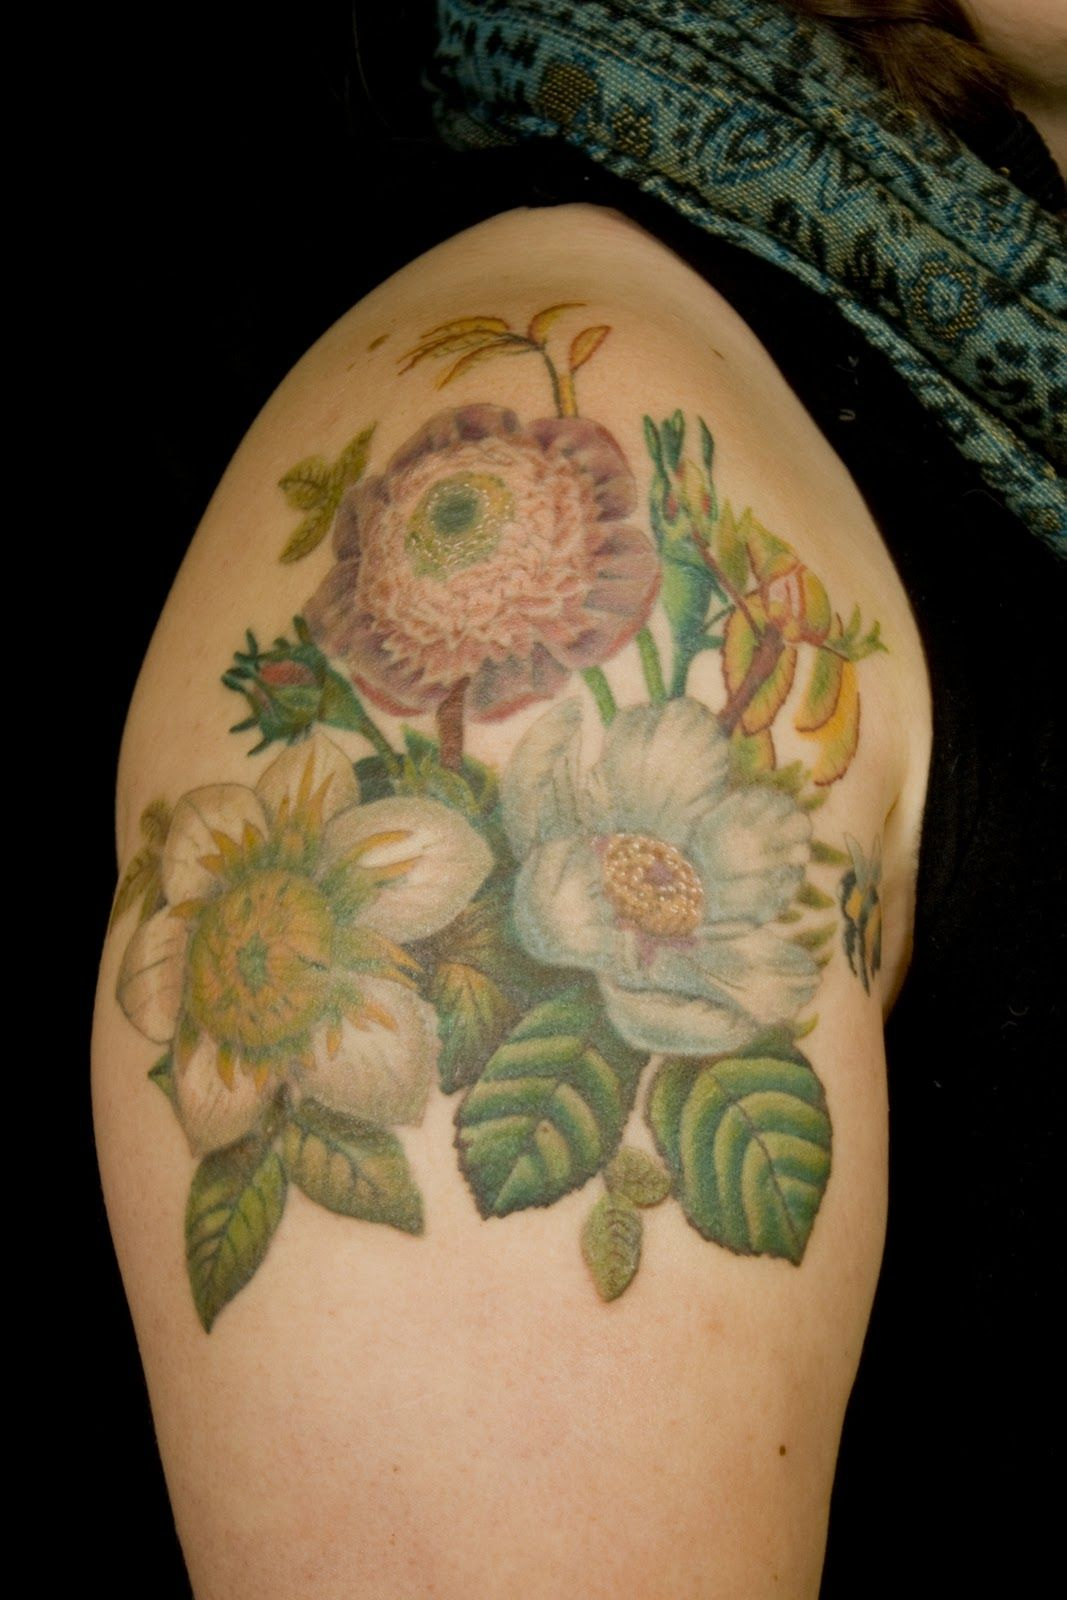 Cool new tattoo ideas for guys botanical flowers  floral tattoos  pinterest  botanical flowers